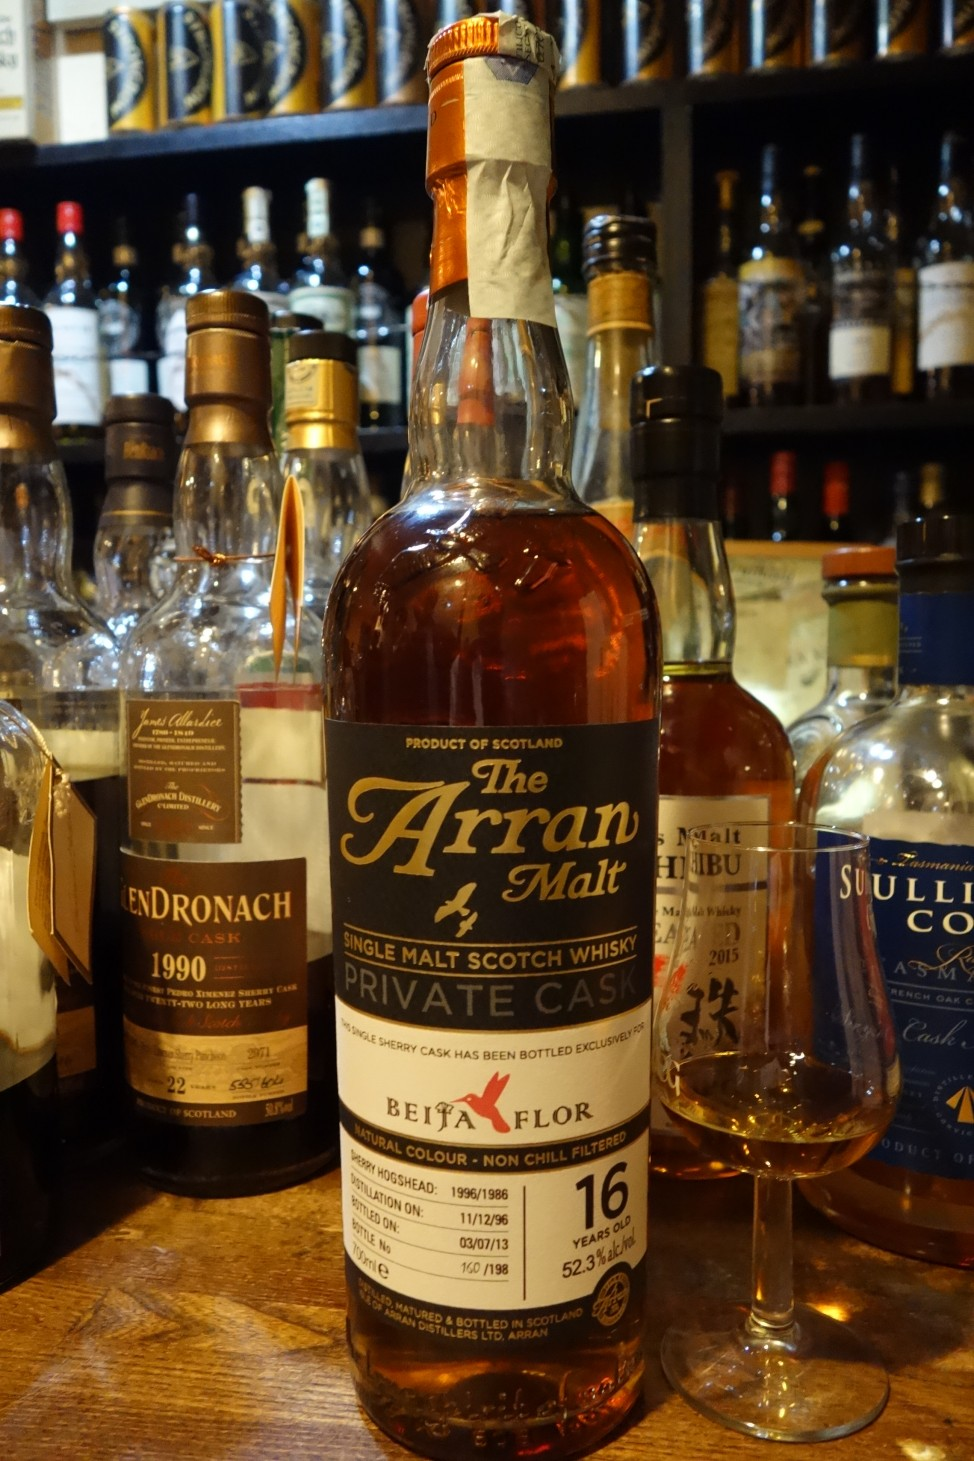 ISLE OF ARRAN 1996-2013 16yo OB for BEIJA FLOR #1996/1986